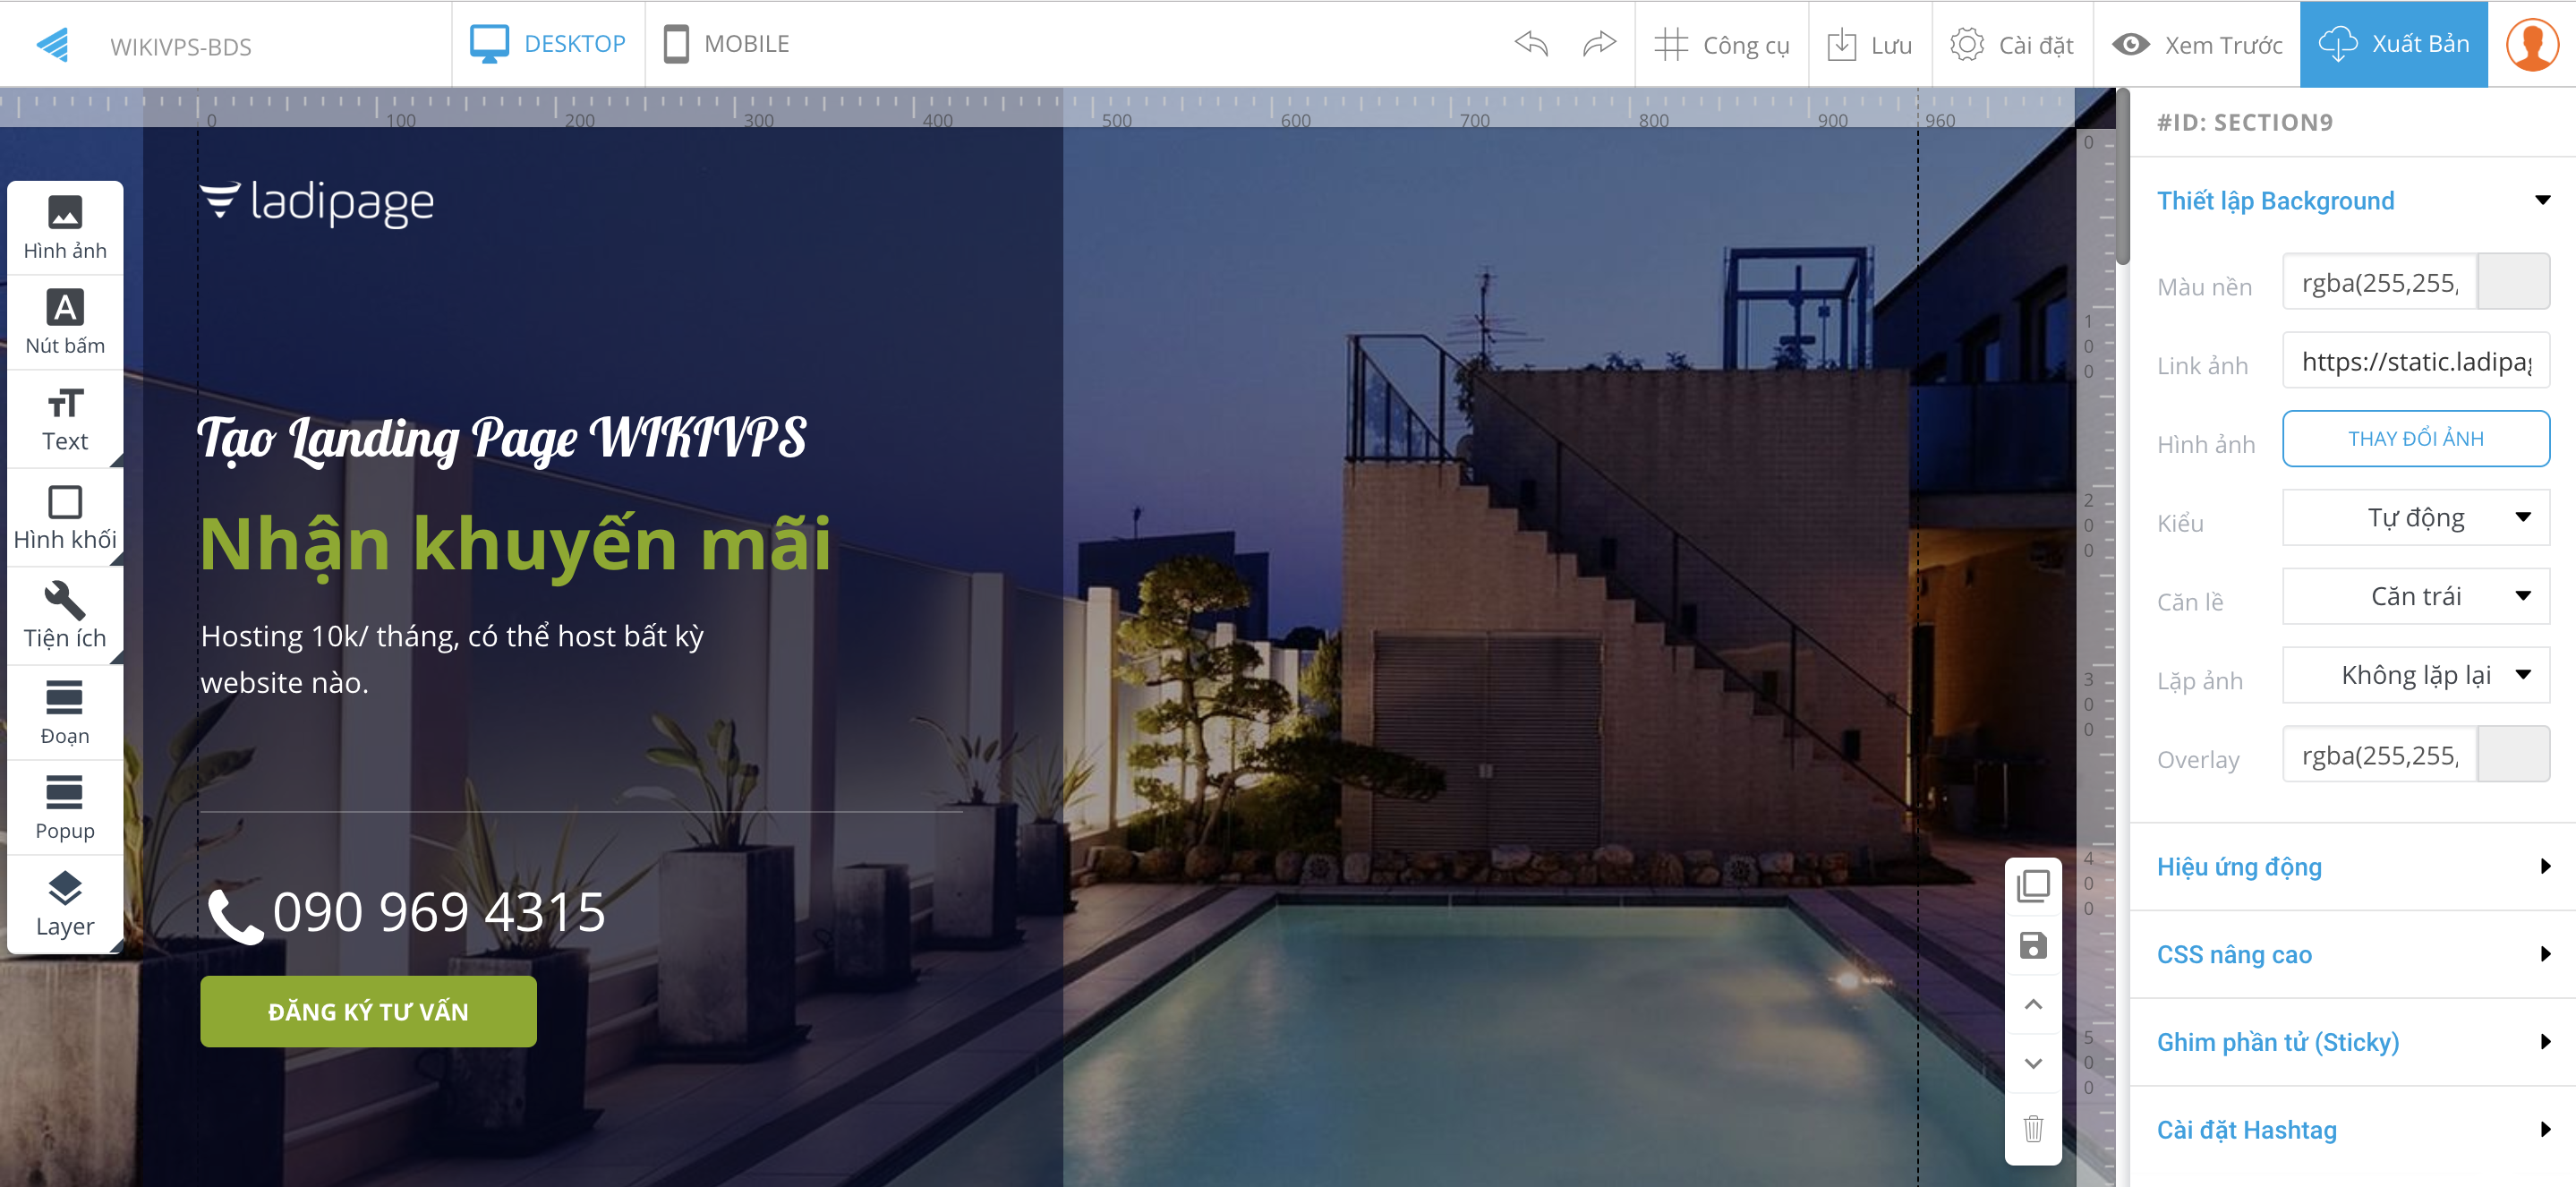 wikivps-edit nội dung landing page